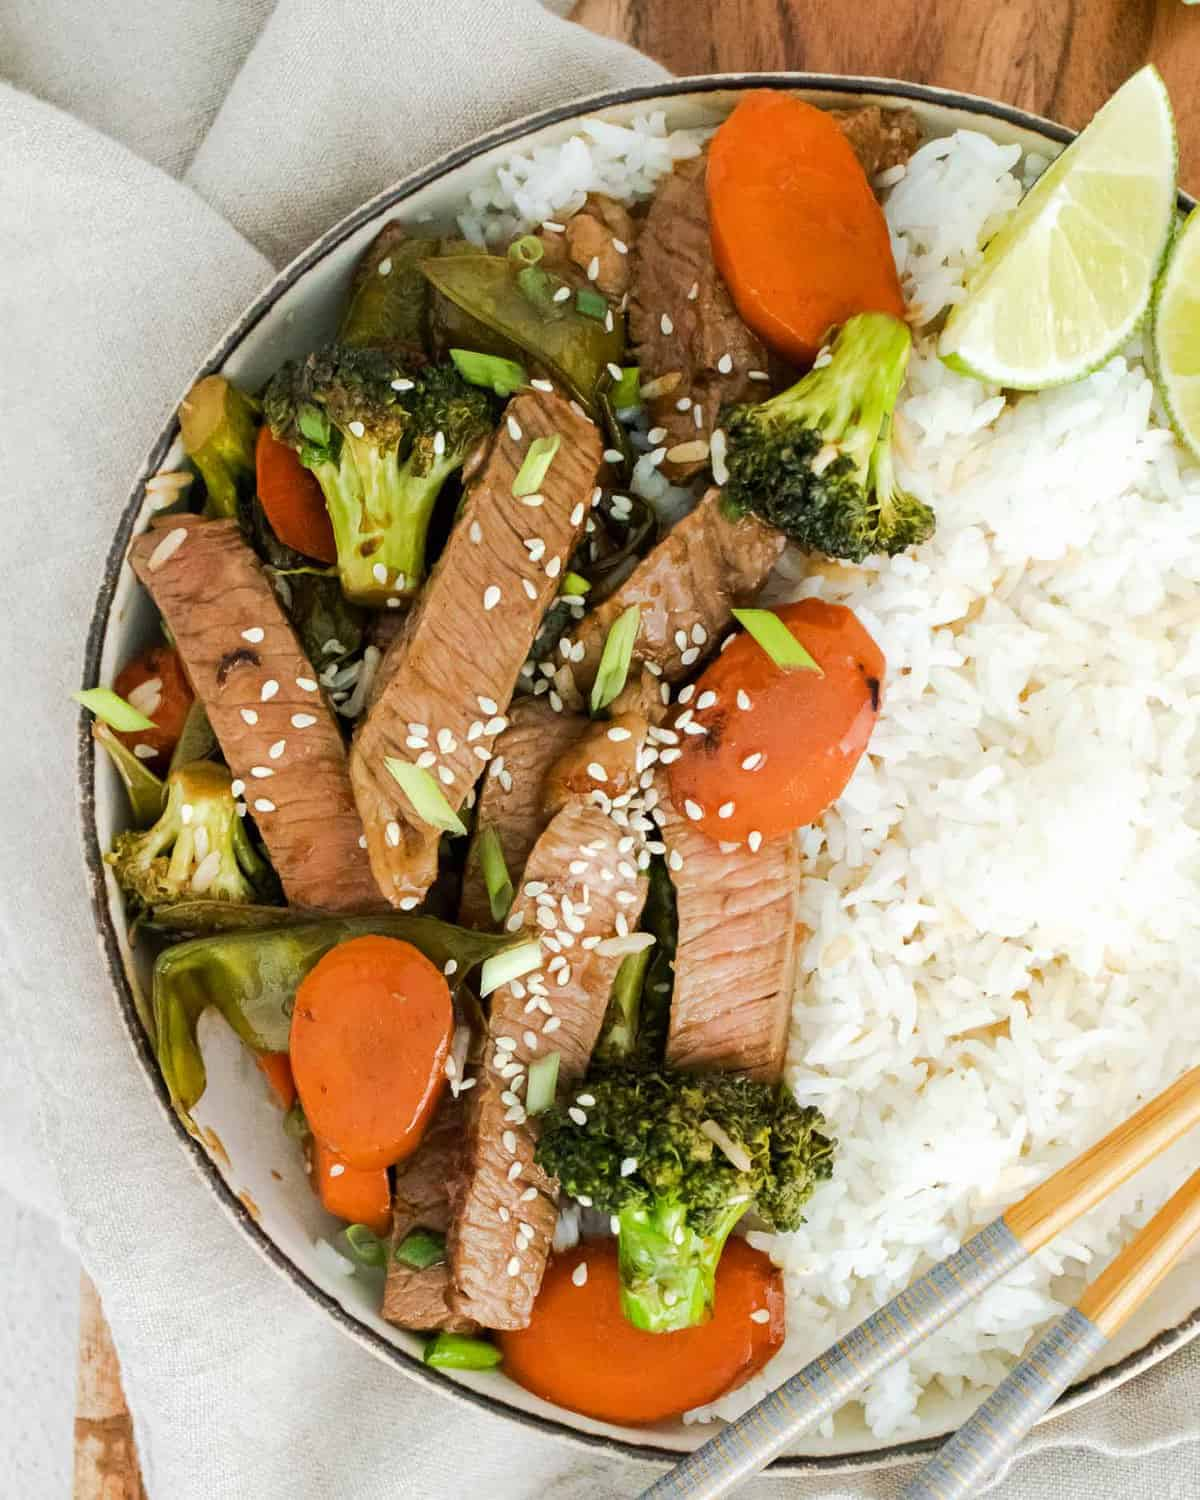 Cooked beef and vegetables in a bowl with rice, topped with sesame seeds.